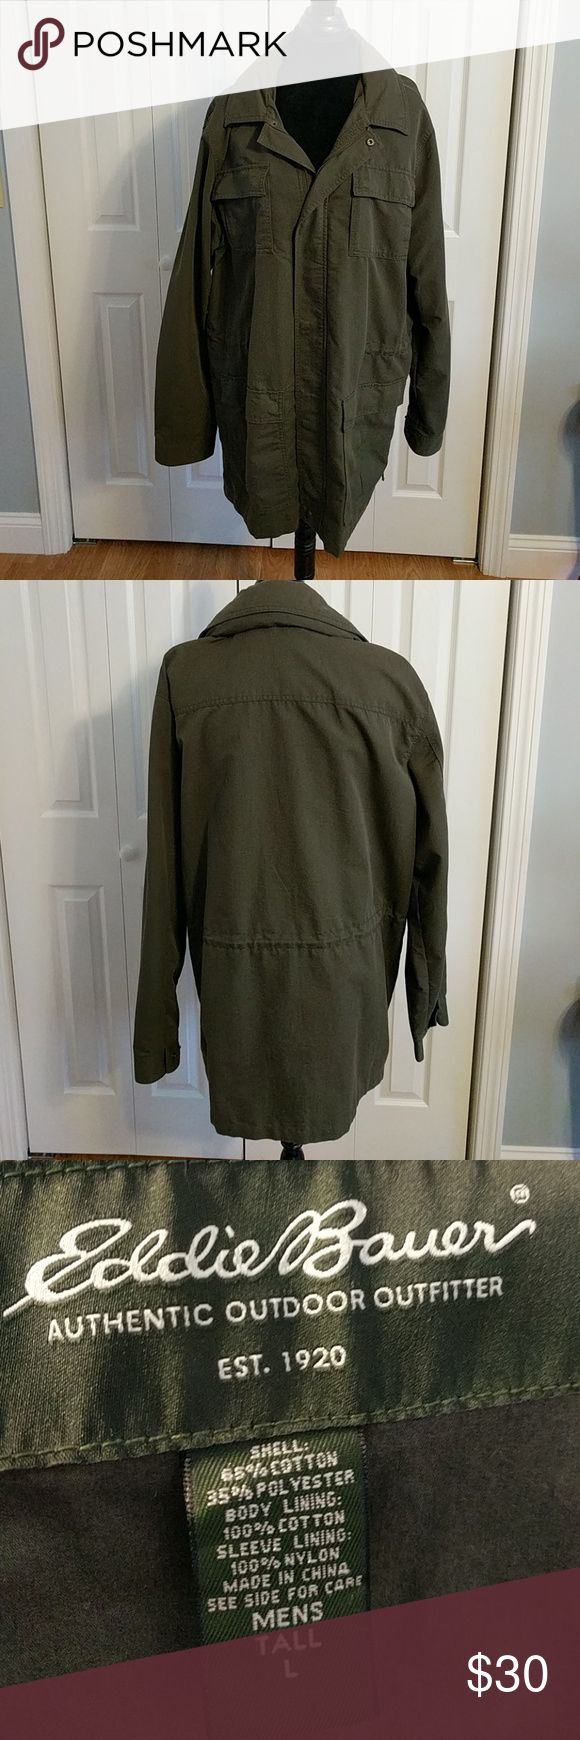 Deep sage green mens car coat. This beautiful Eddie Bauer man's coat was worn only once. It is lite weight enough for spring or fall. It's also the perfect car coat for winter. Hood in collar. This is a Large Tall Eddie Bauer Jackets & Coats Lightweight & Shirt Jackets